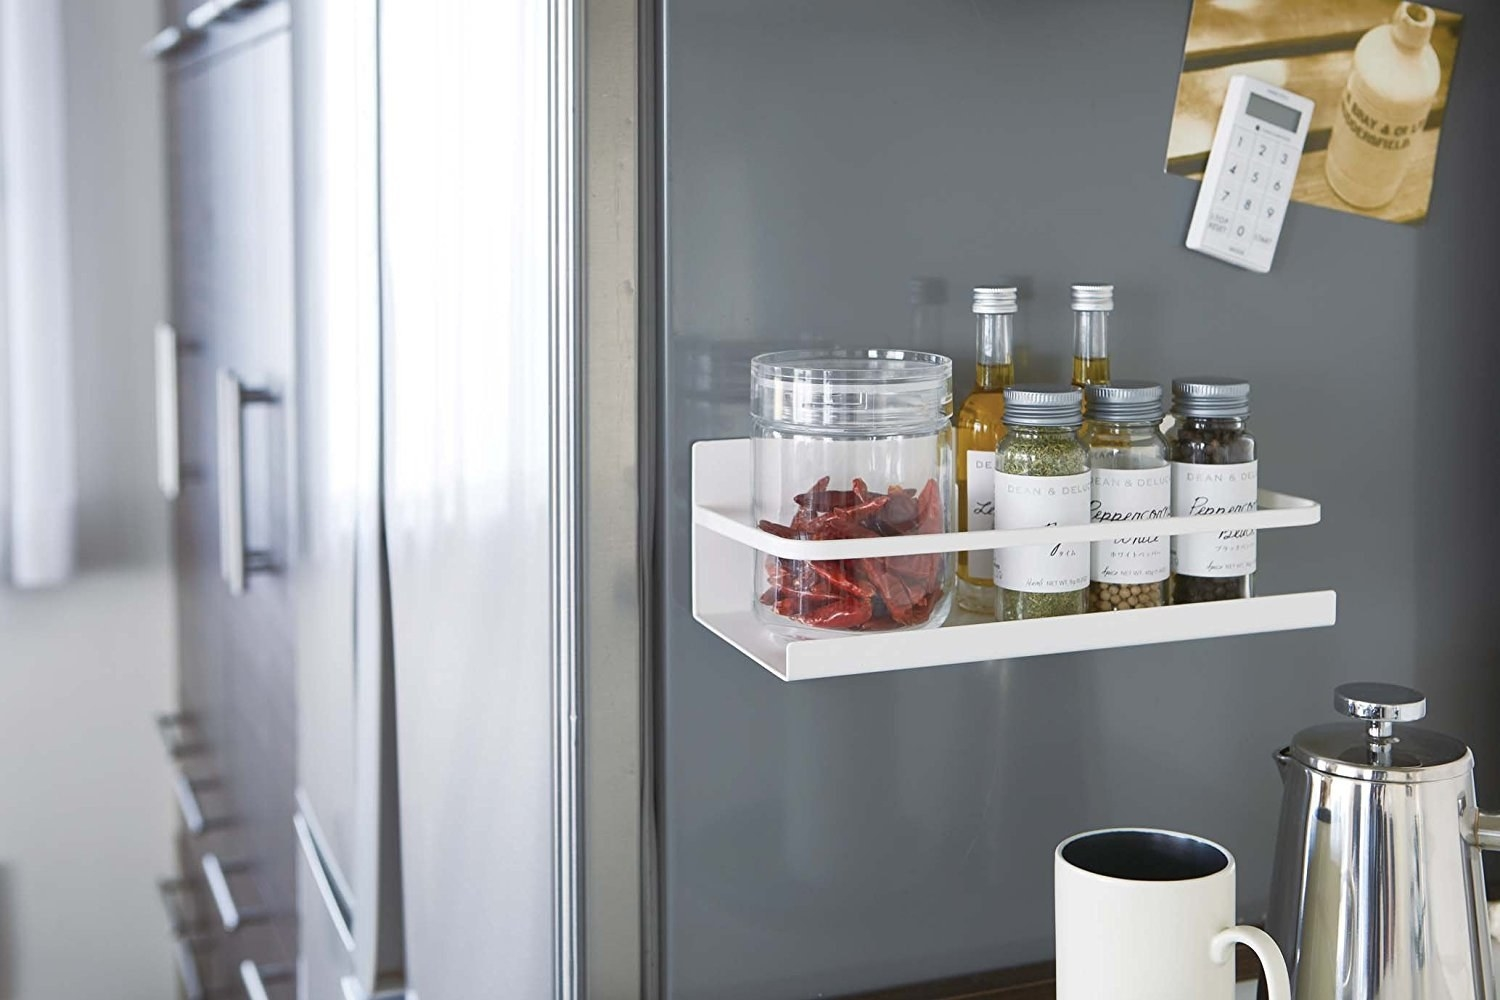 A white magnetic shelf rack holding a mix of spices and oils on the side of a refrigerator